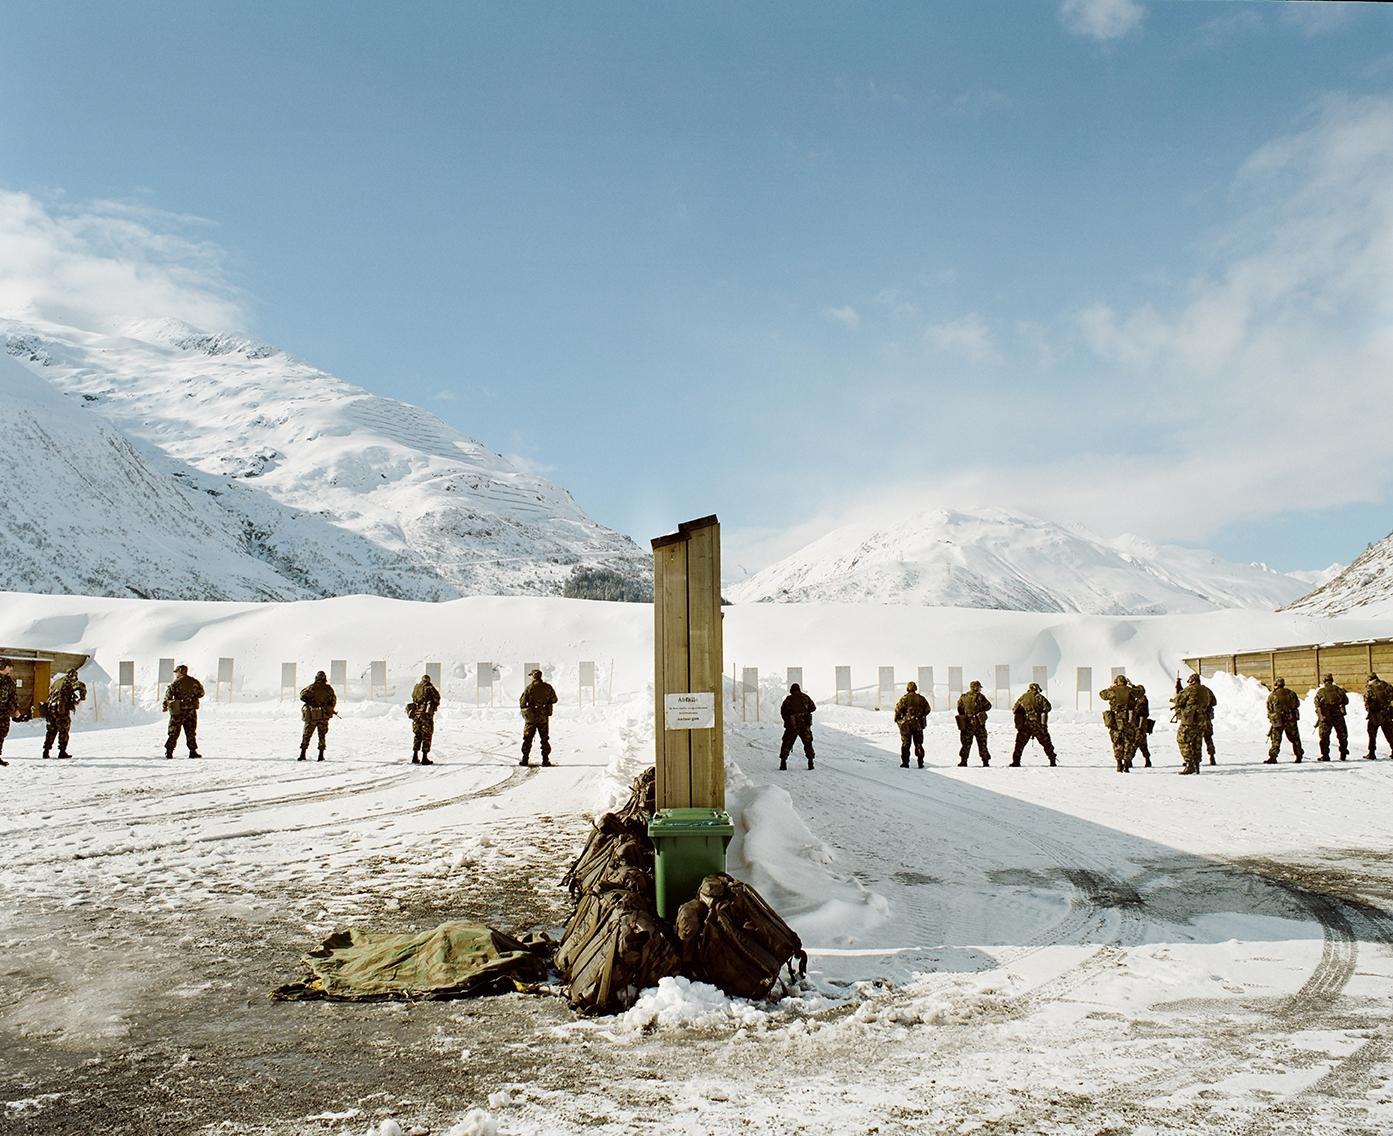 A military shooting range in the snow.